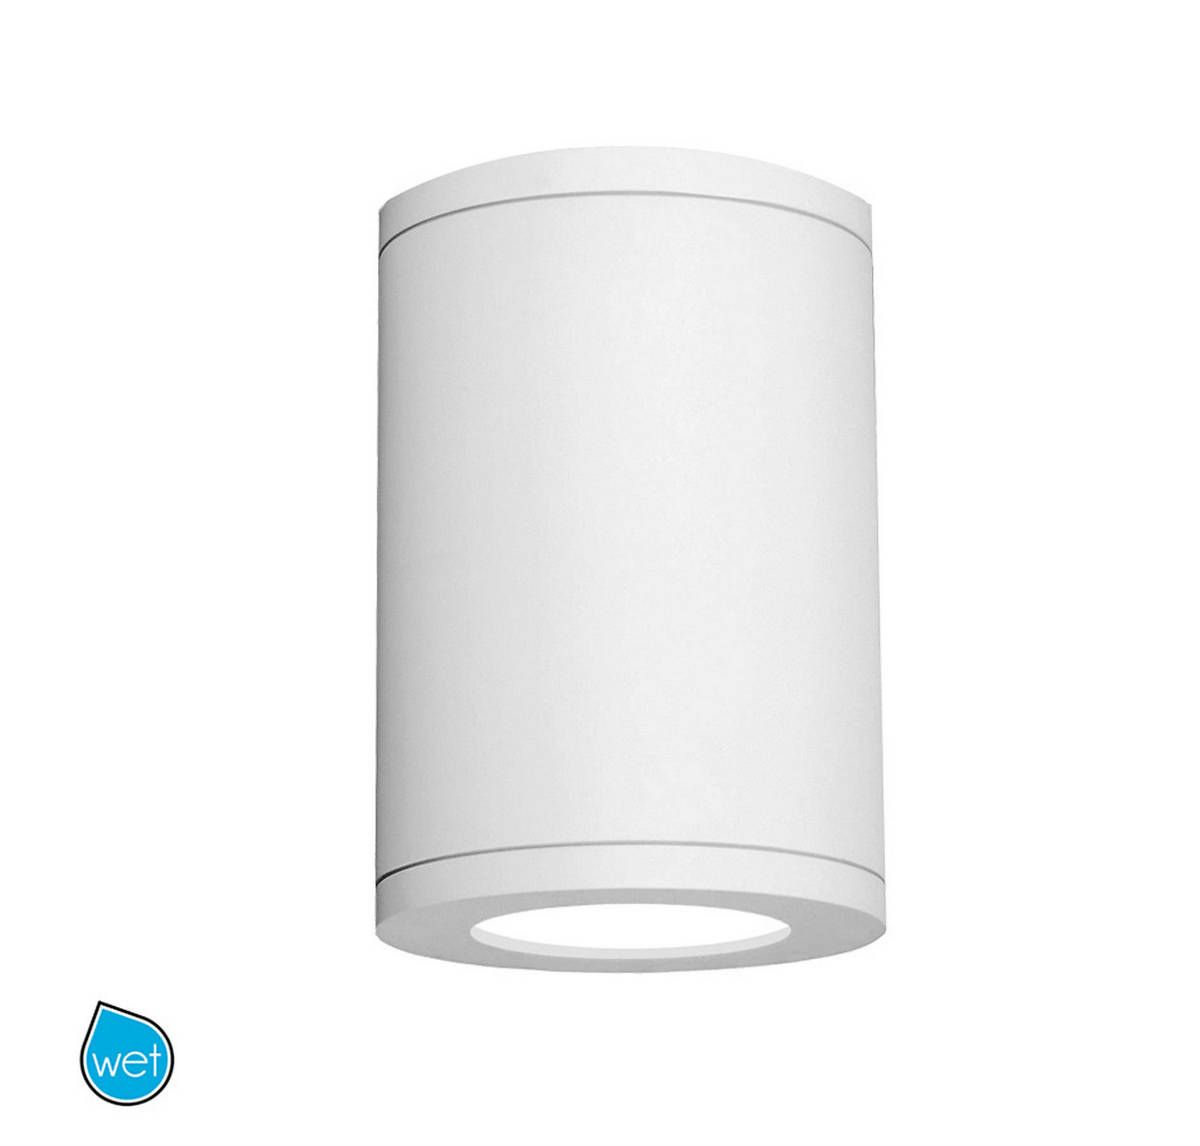 outlet store 48671 1d6d9 WAC Lighting Tube 7